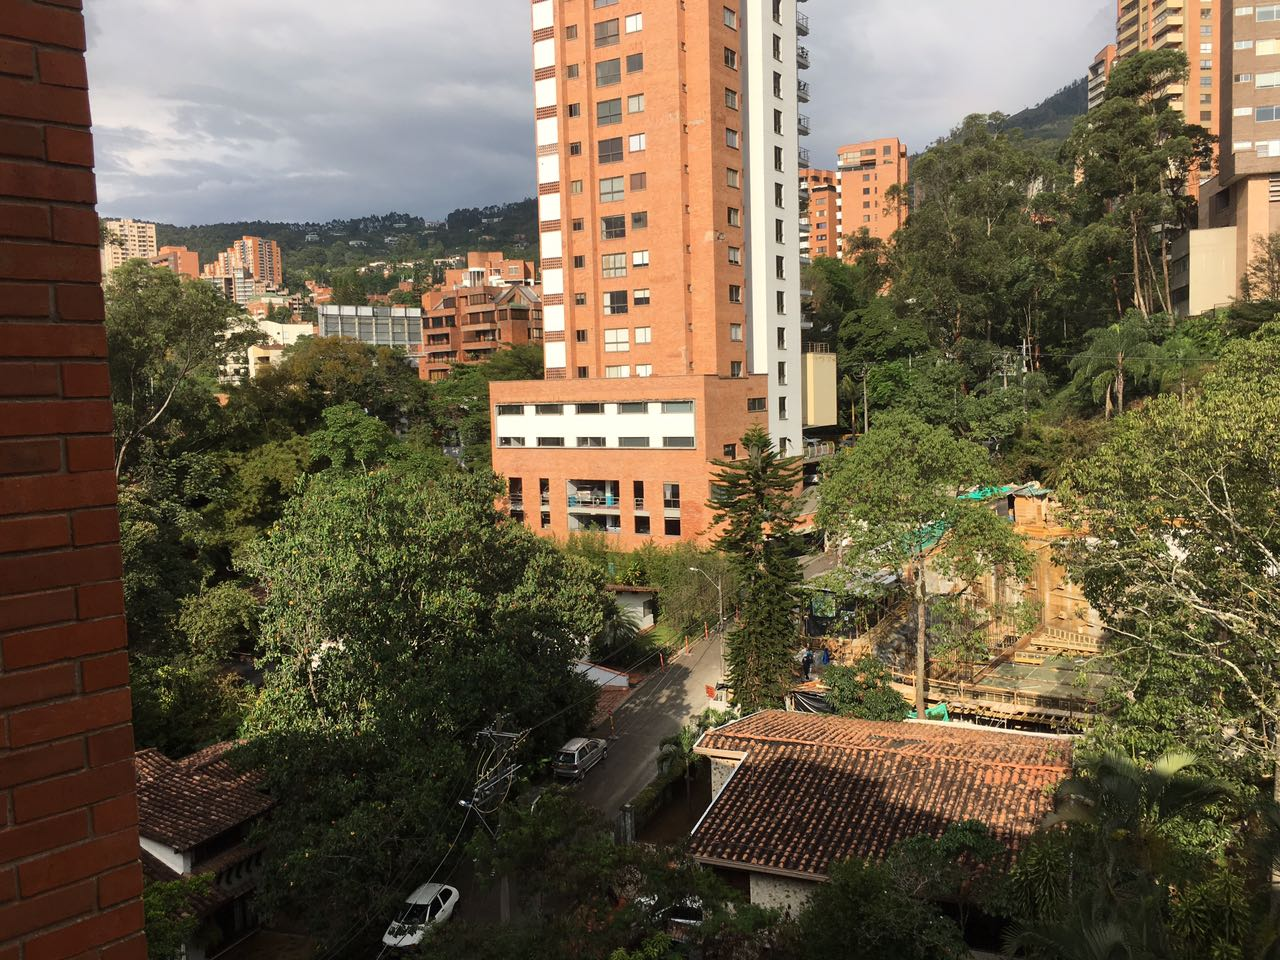 Apt in Poblado Alto with an amazing view of the city